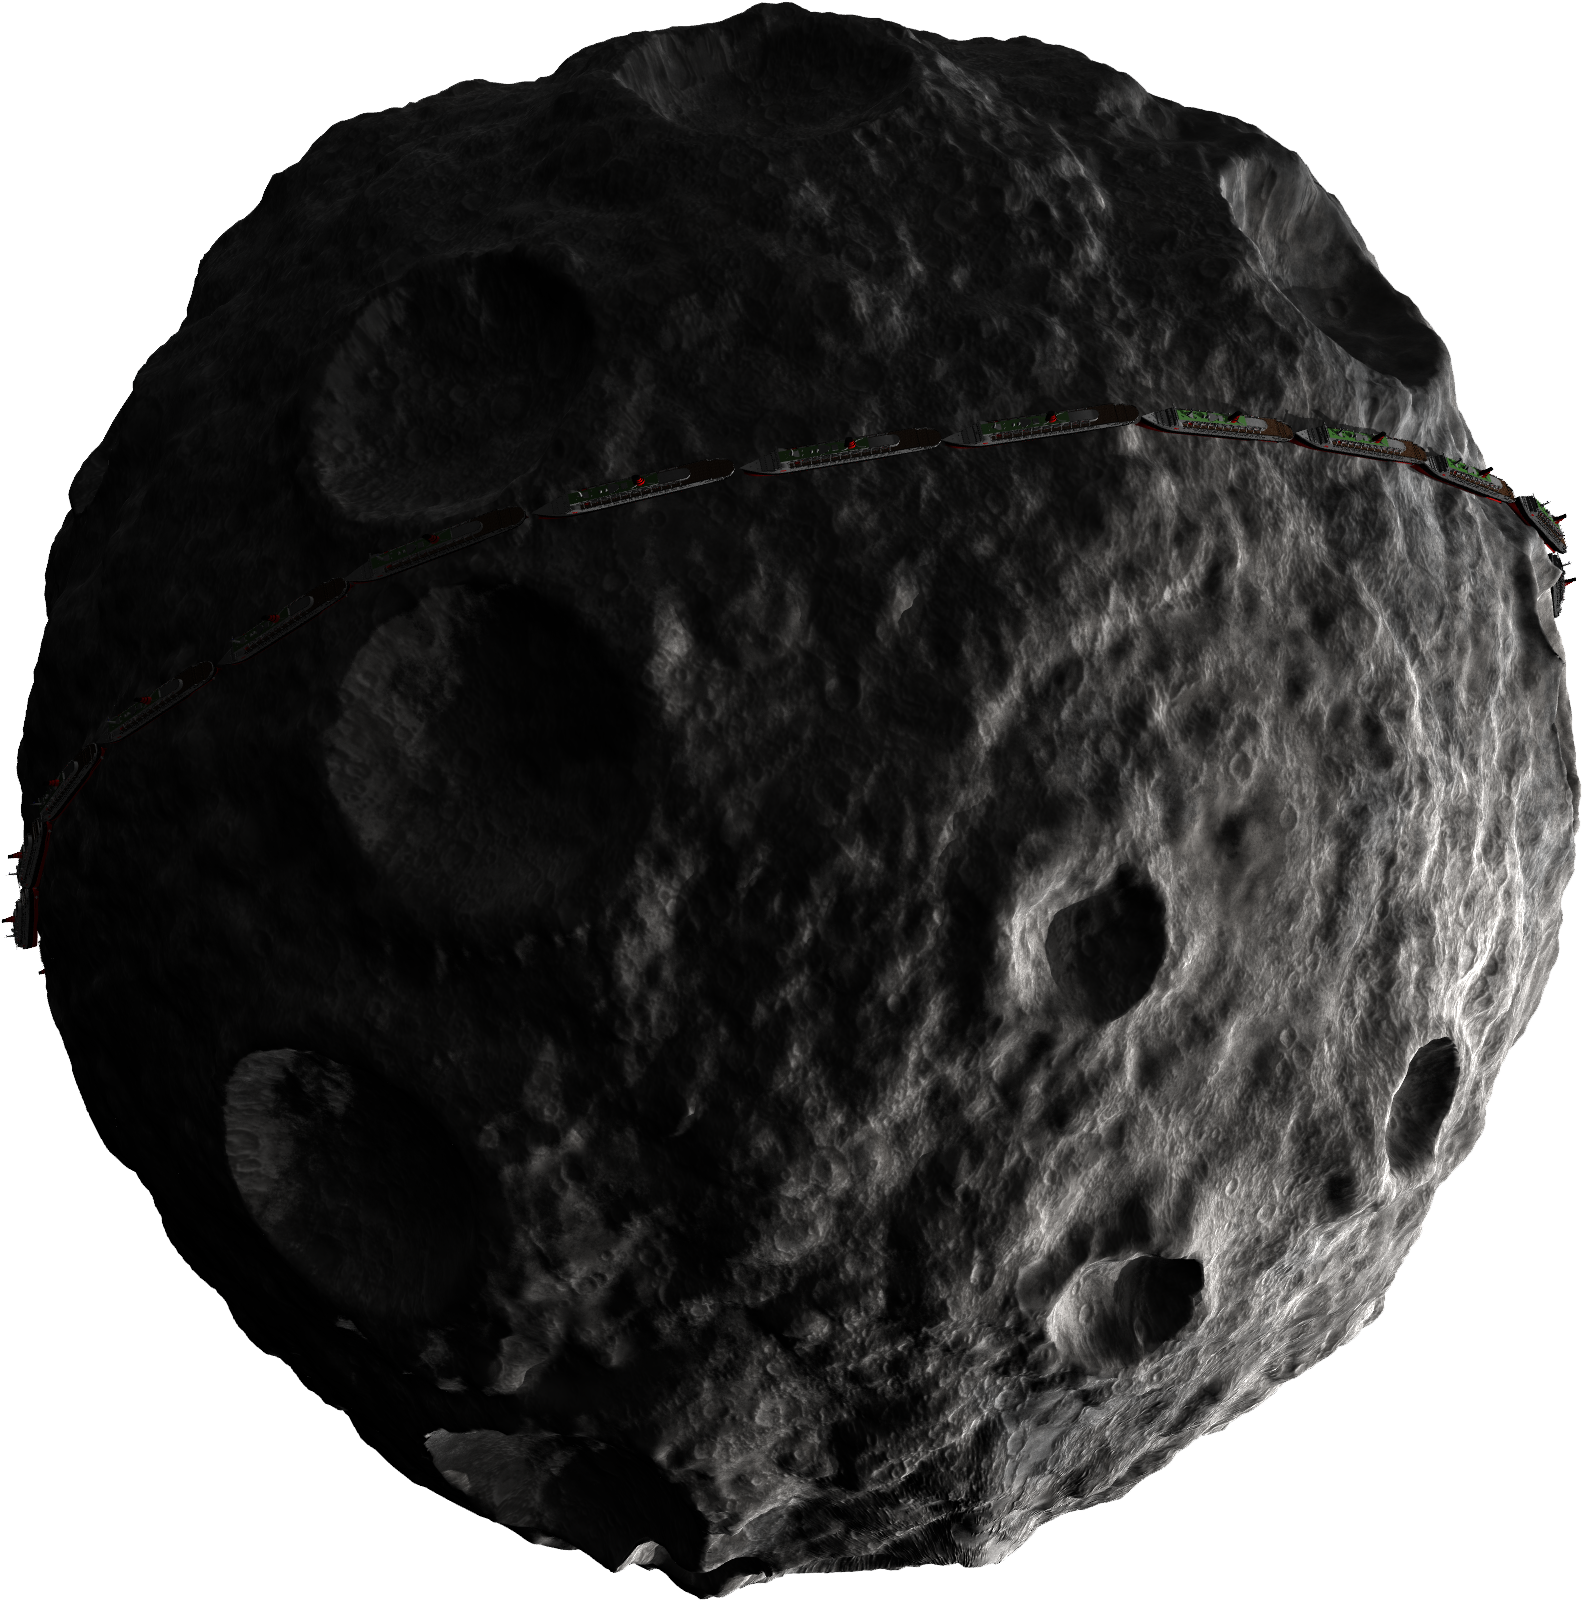 Png transparent download . Asteroid clipart sprite